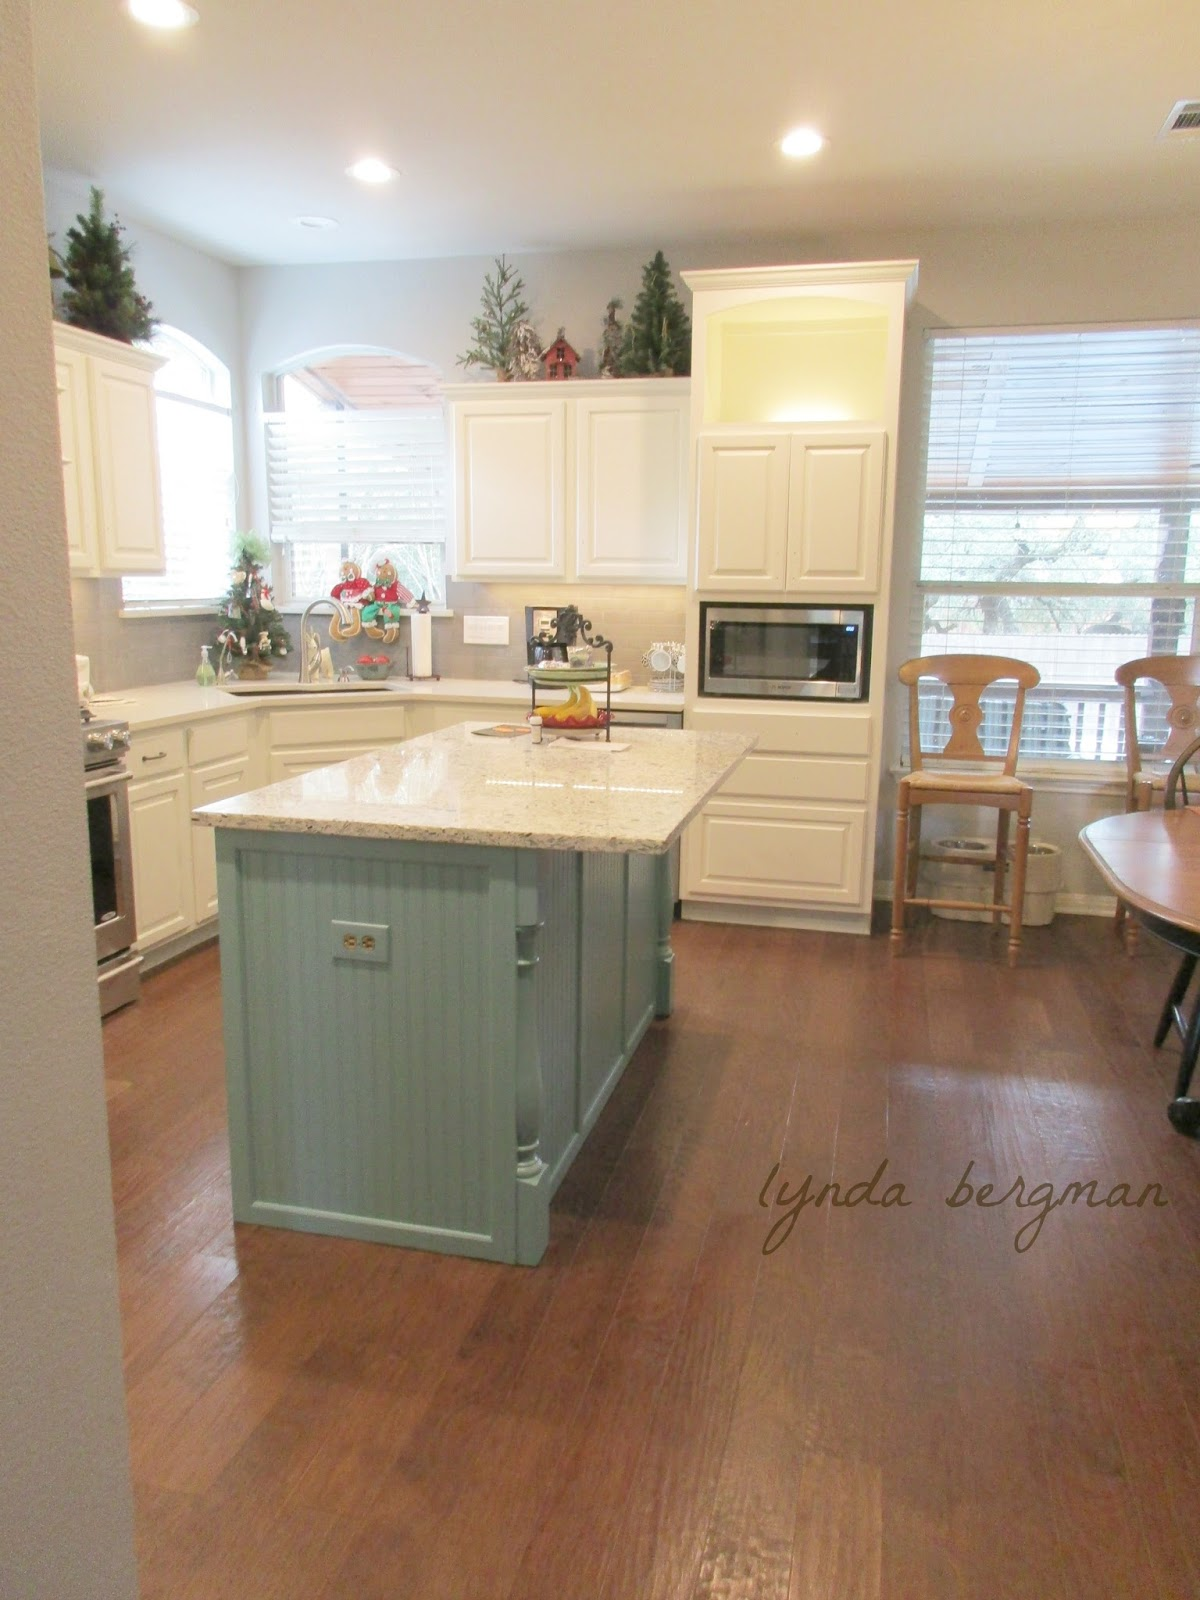 LYNDA BERGMAN DECORATIVE ARTISAN: KITCHEN REMODEL